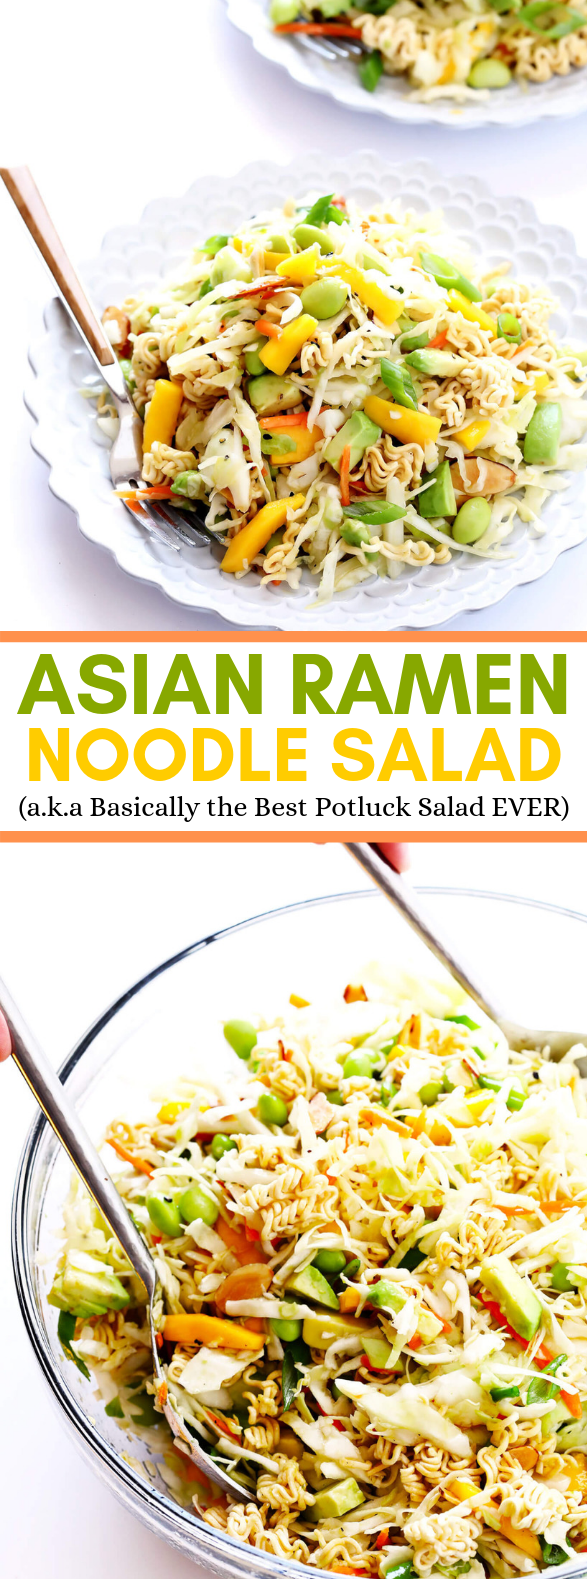 CRUNCHY ASIAN RAMEN NOODLE SALAD #vegan #asianfood